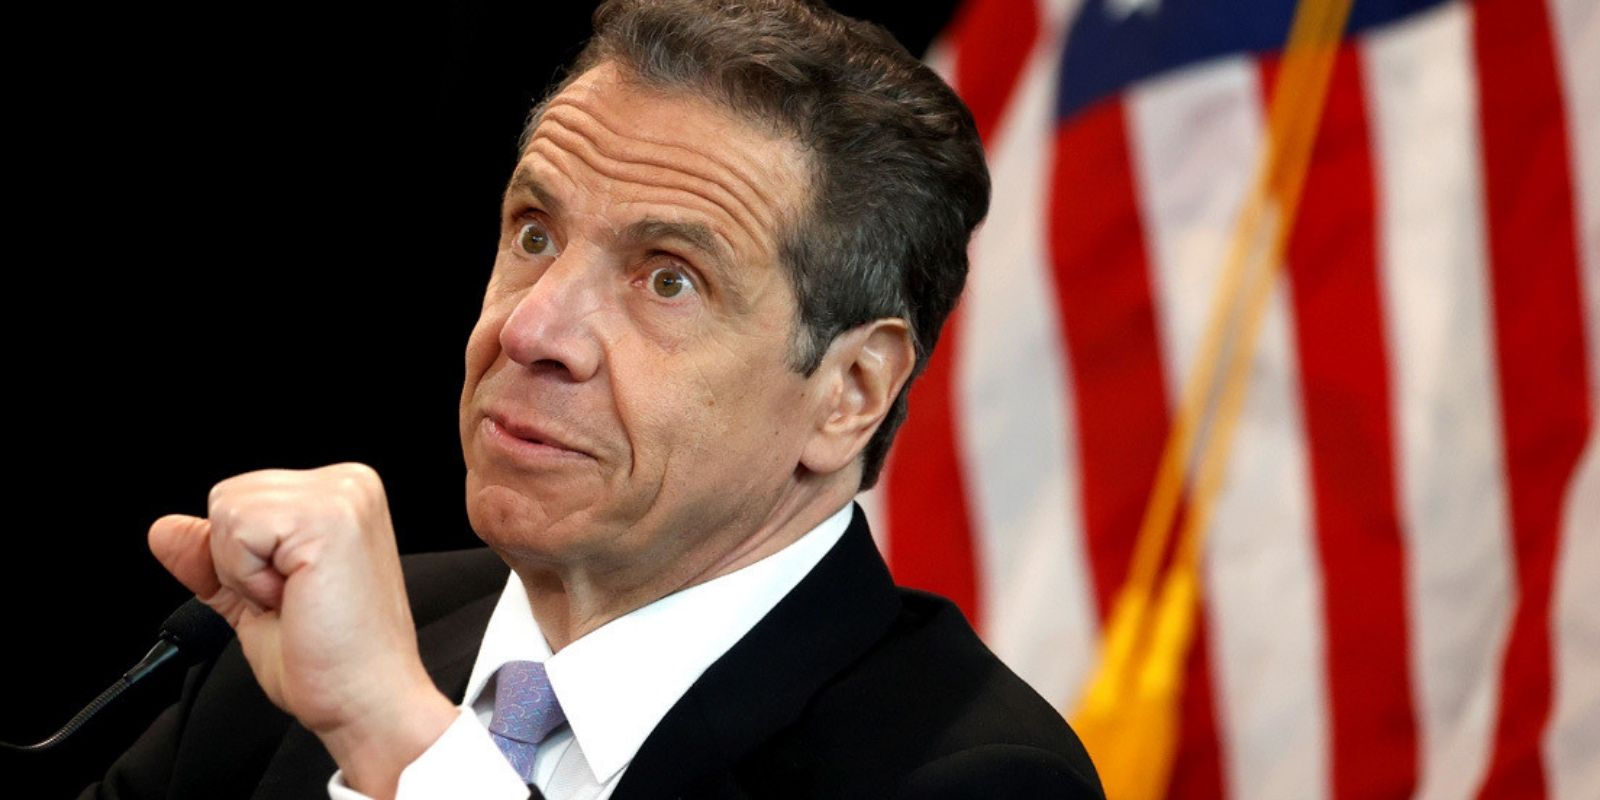 New York to pay up to $15,600 to undocumented workers who didn't get pandemic payouts